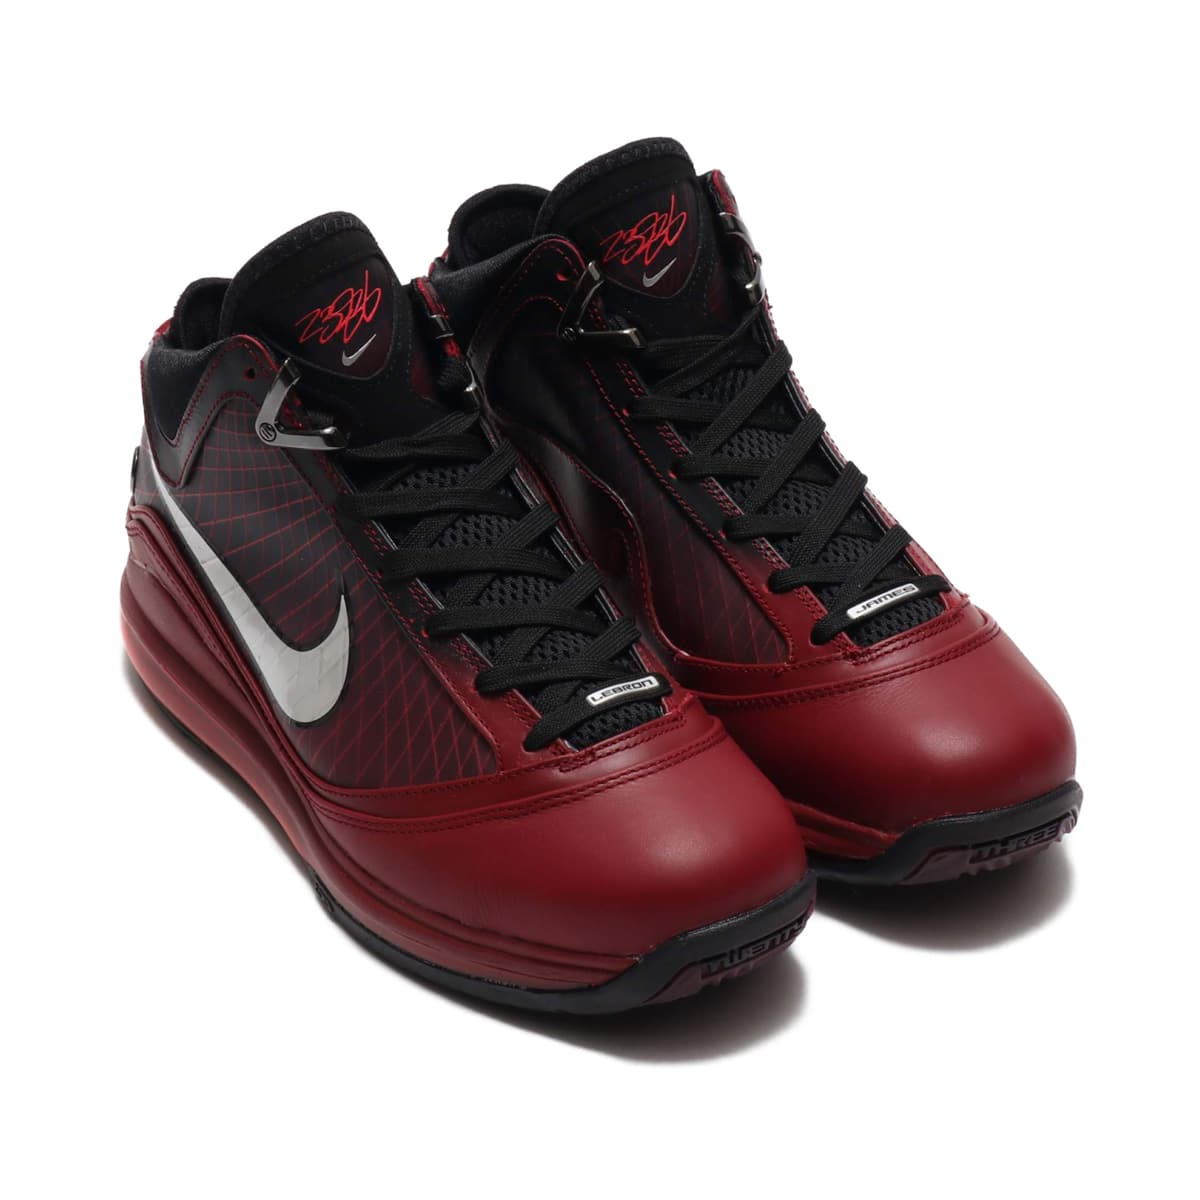 NIKE LEBRON VII QS TEAM RED/METALLIC SILVER-BLACK-HOT RED 19HO-S_photo_large